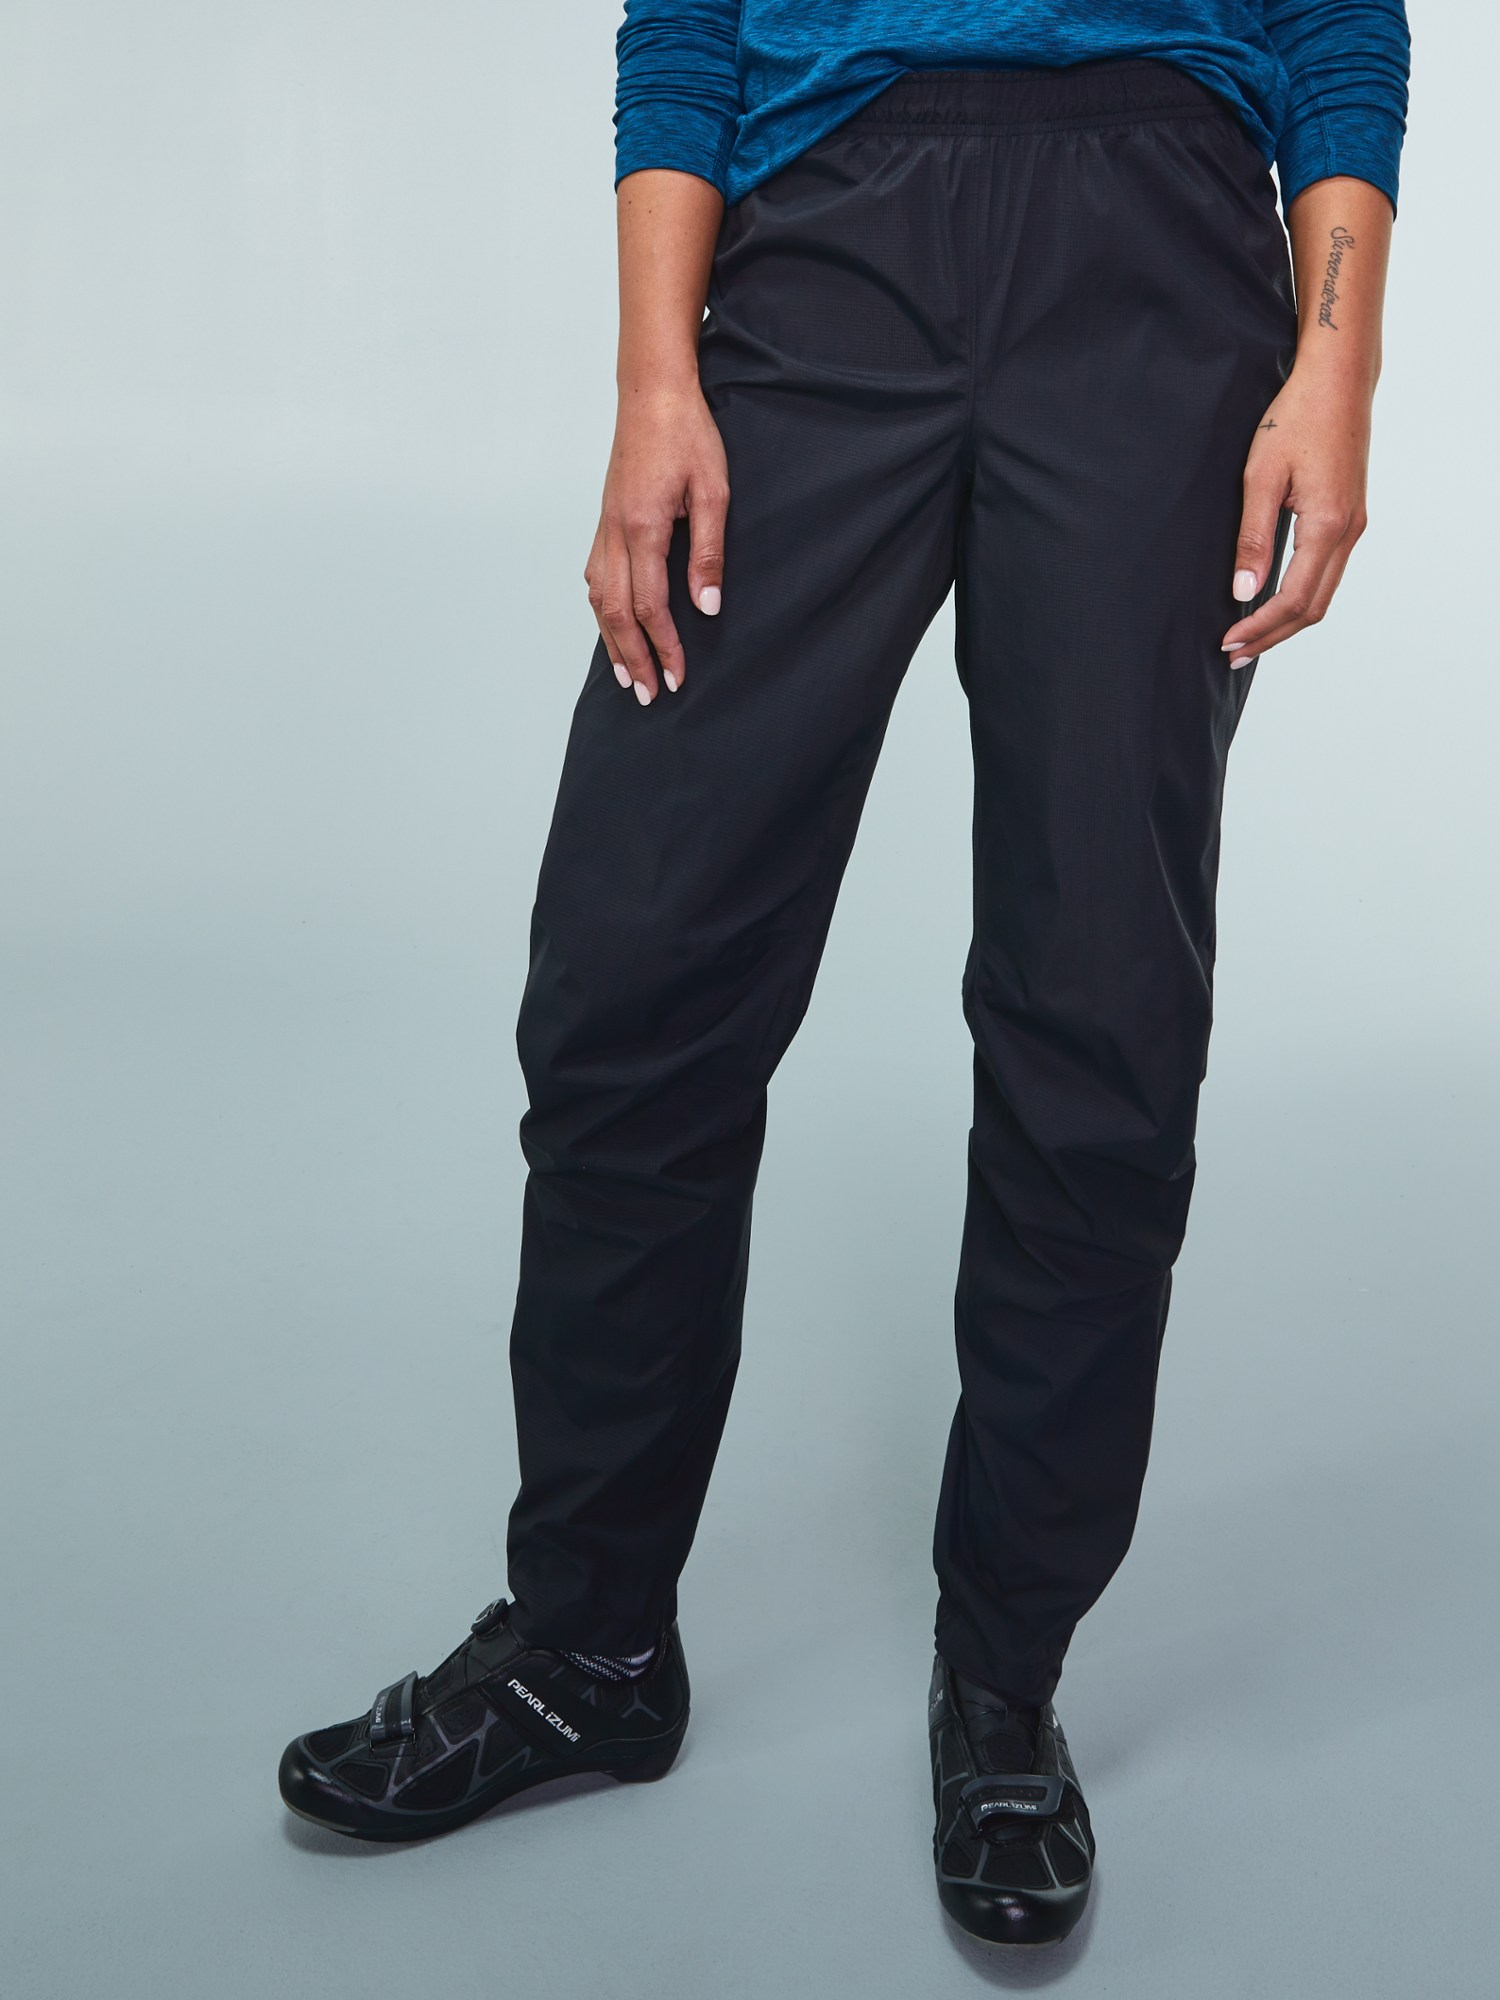 Co-op Cycles Rain Cycling Pants - Women's